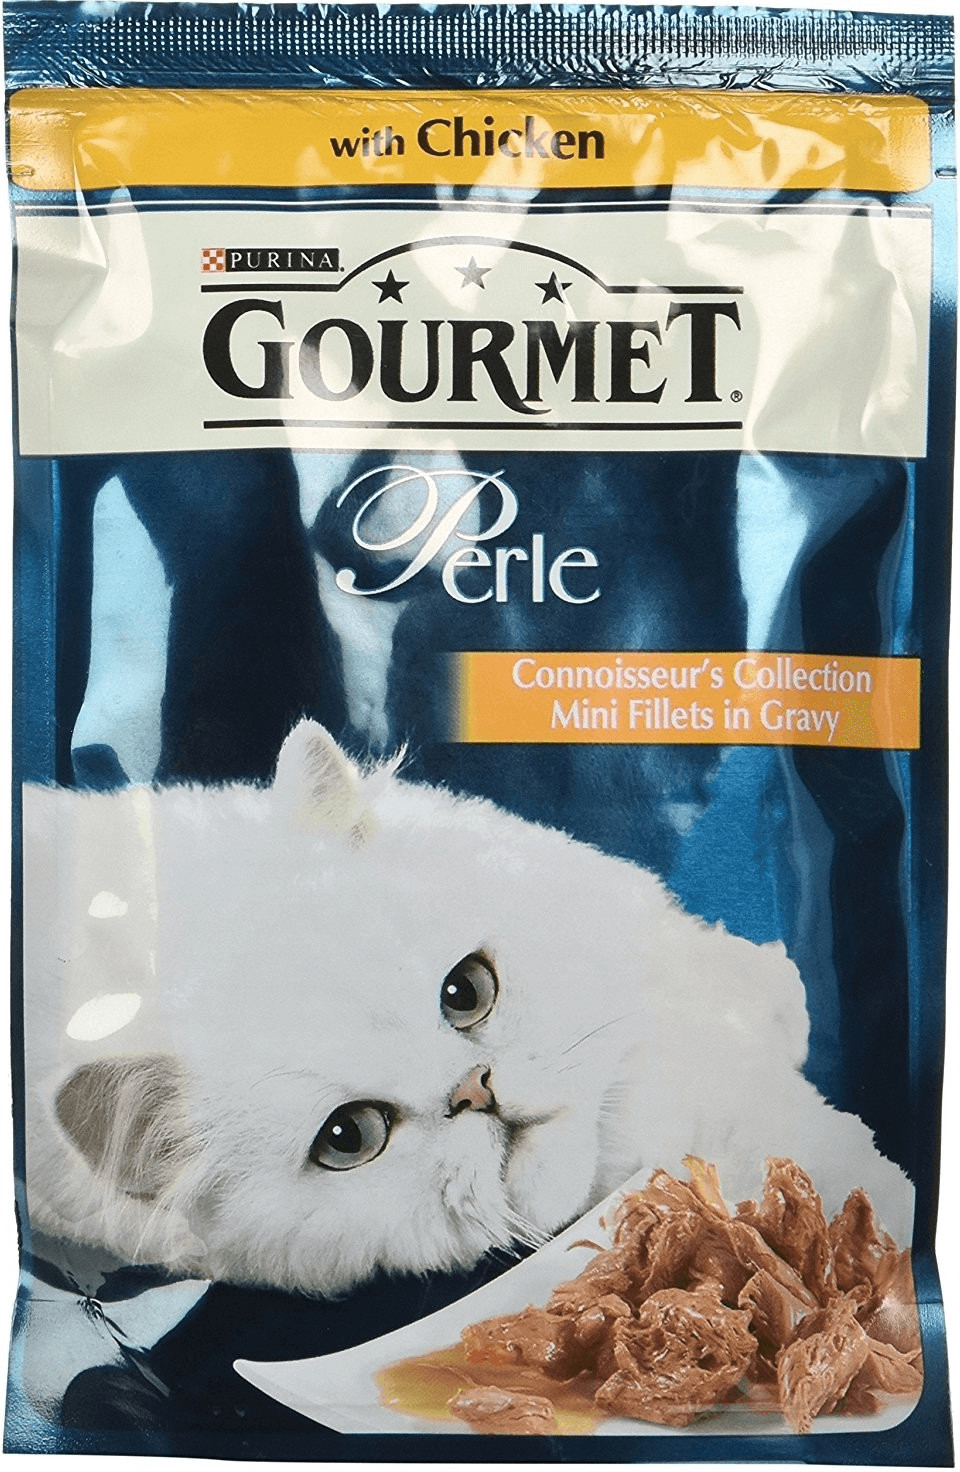 Purina Gourmet Perle Mini Fillets With Chicken ...